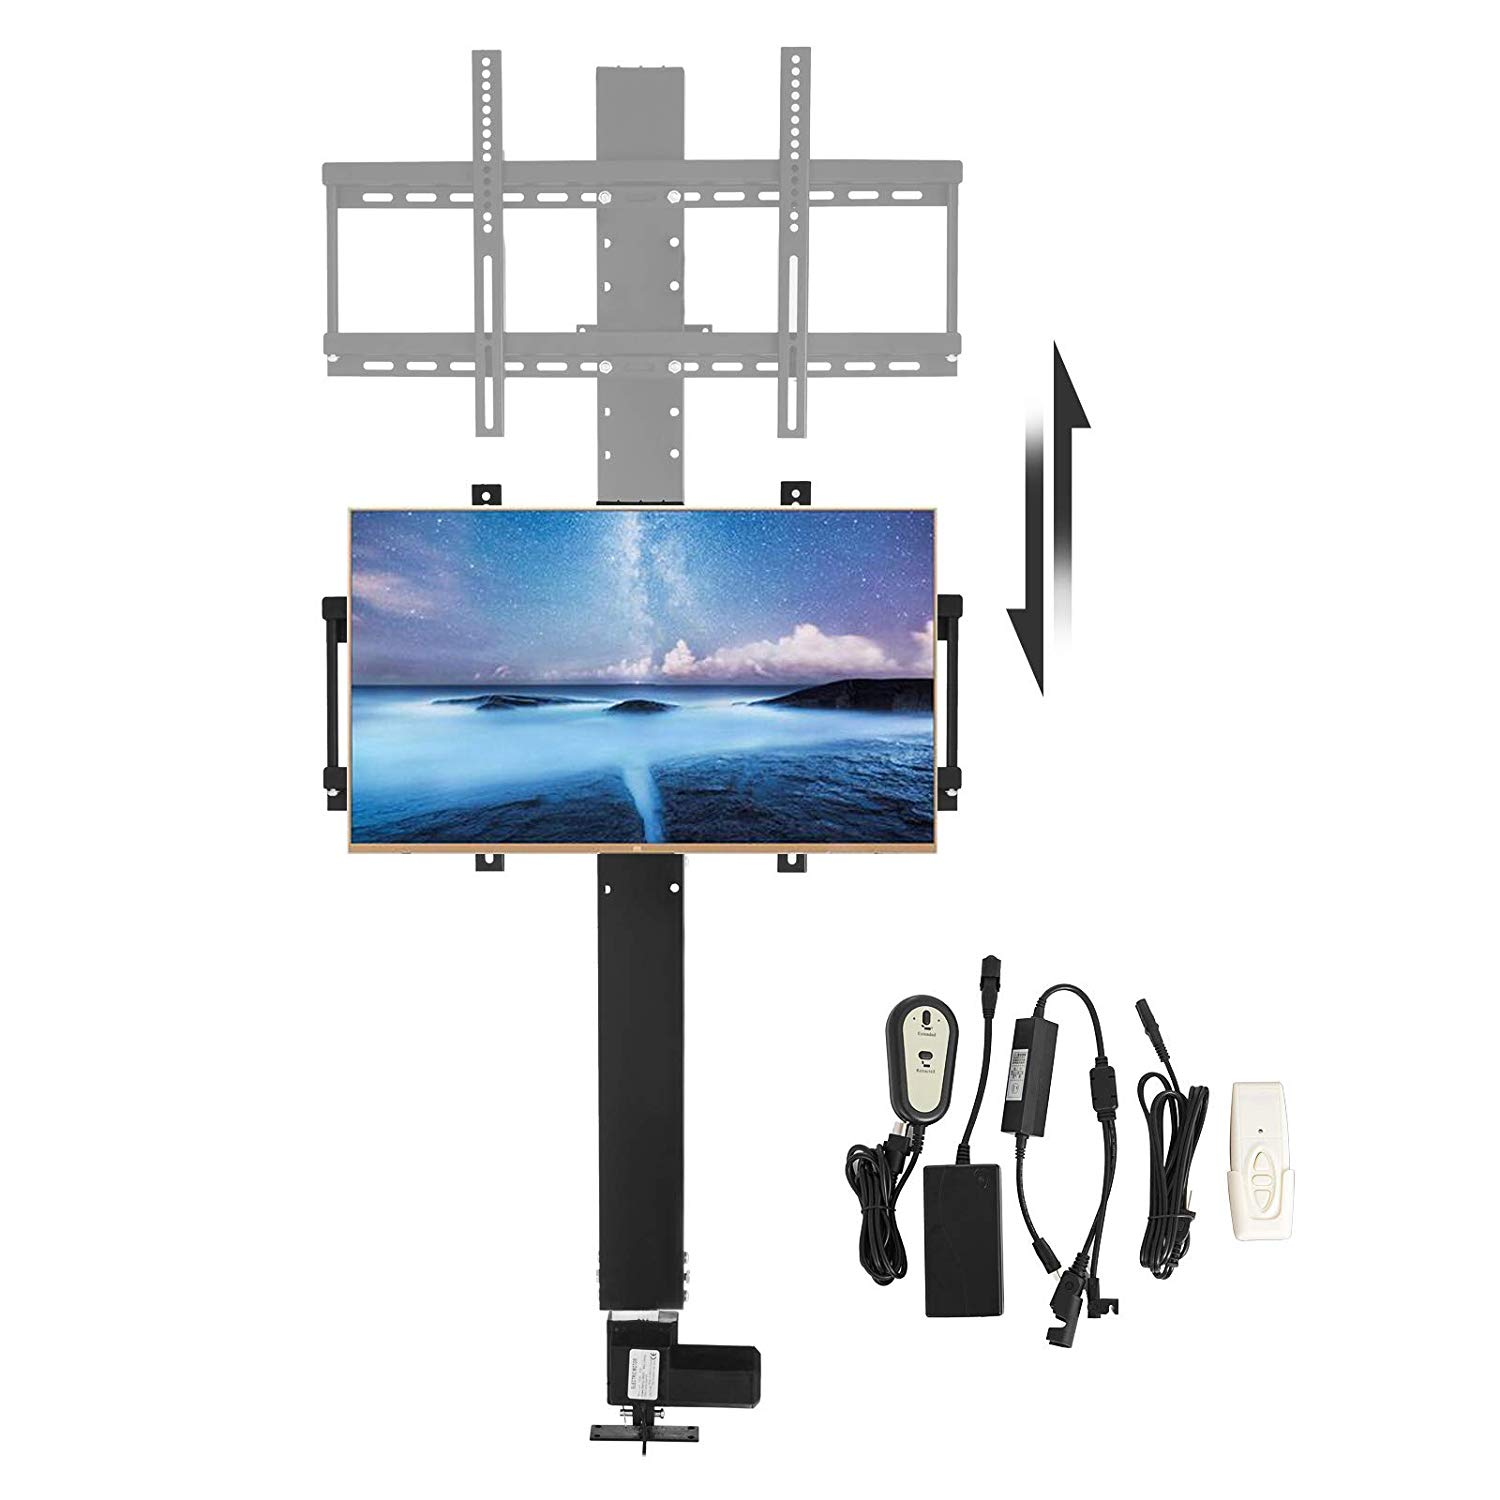 Cheap Plasma Tv Lift Risers Find Plasma Tv Lift Risers Deals On Line At Alibaba Com